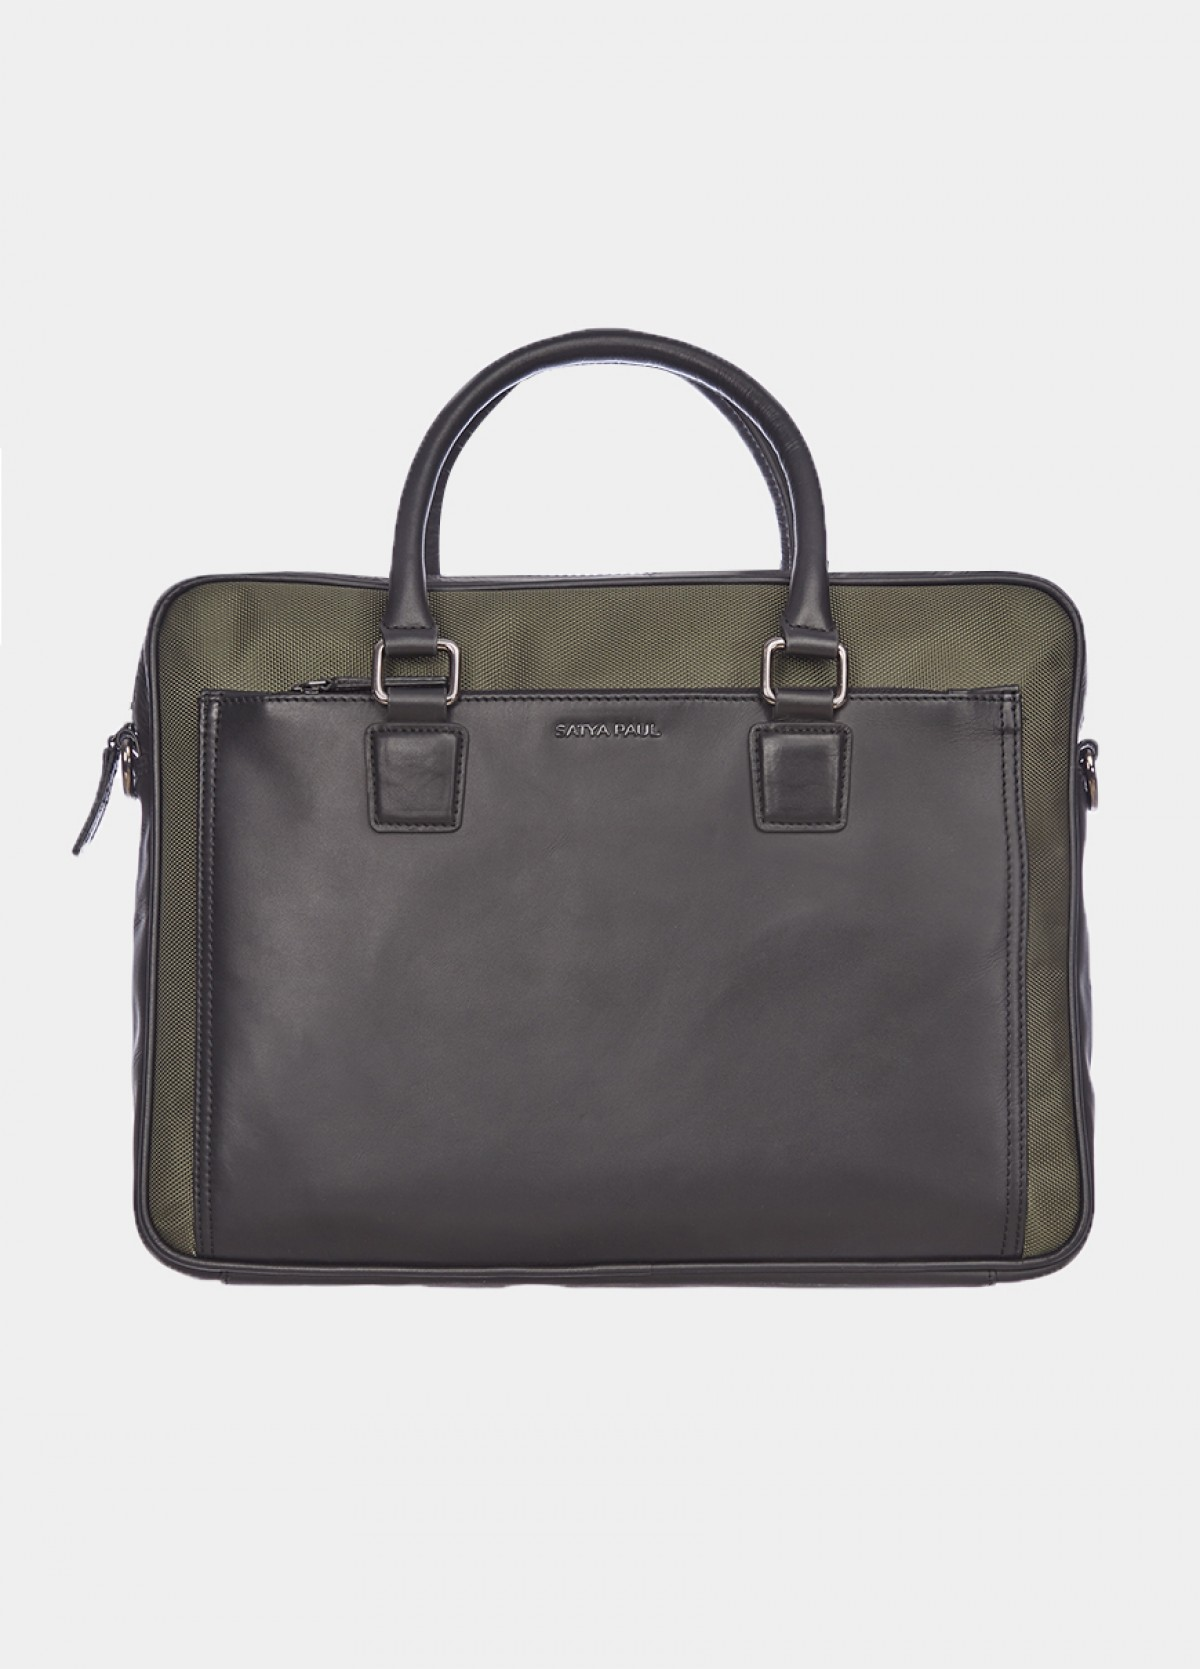 The Leather Laptop Bag